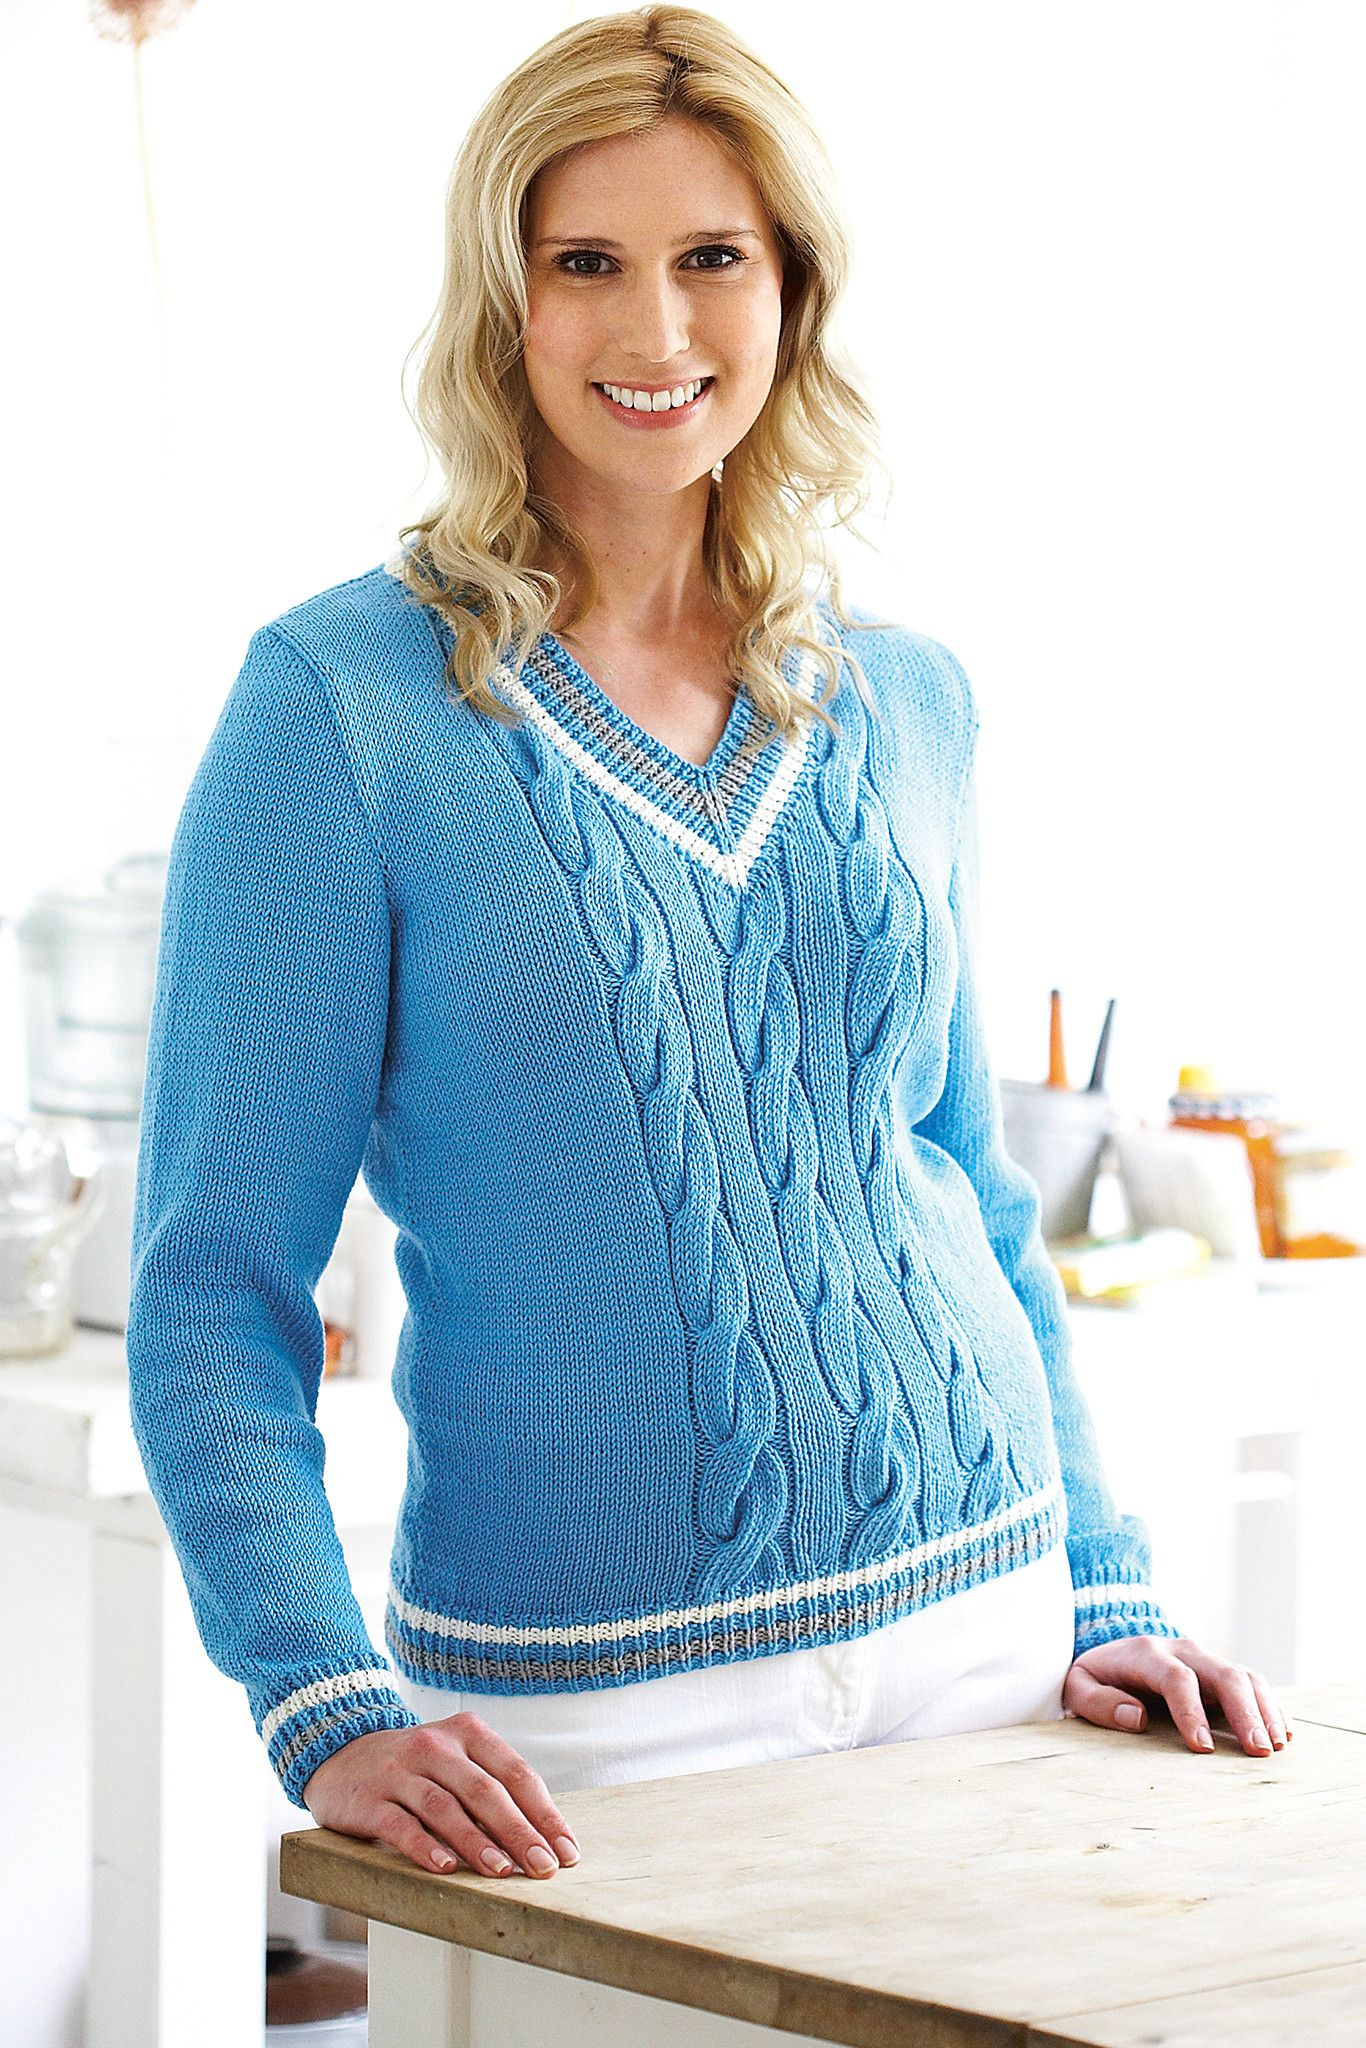 Cable front womens knitted cricket sweater with striped edges cable front womens knitted cricket sweater with striped edges shop the ladies pattern now bankloansurffo Image collections